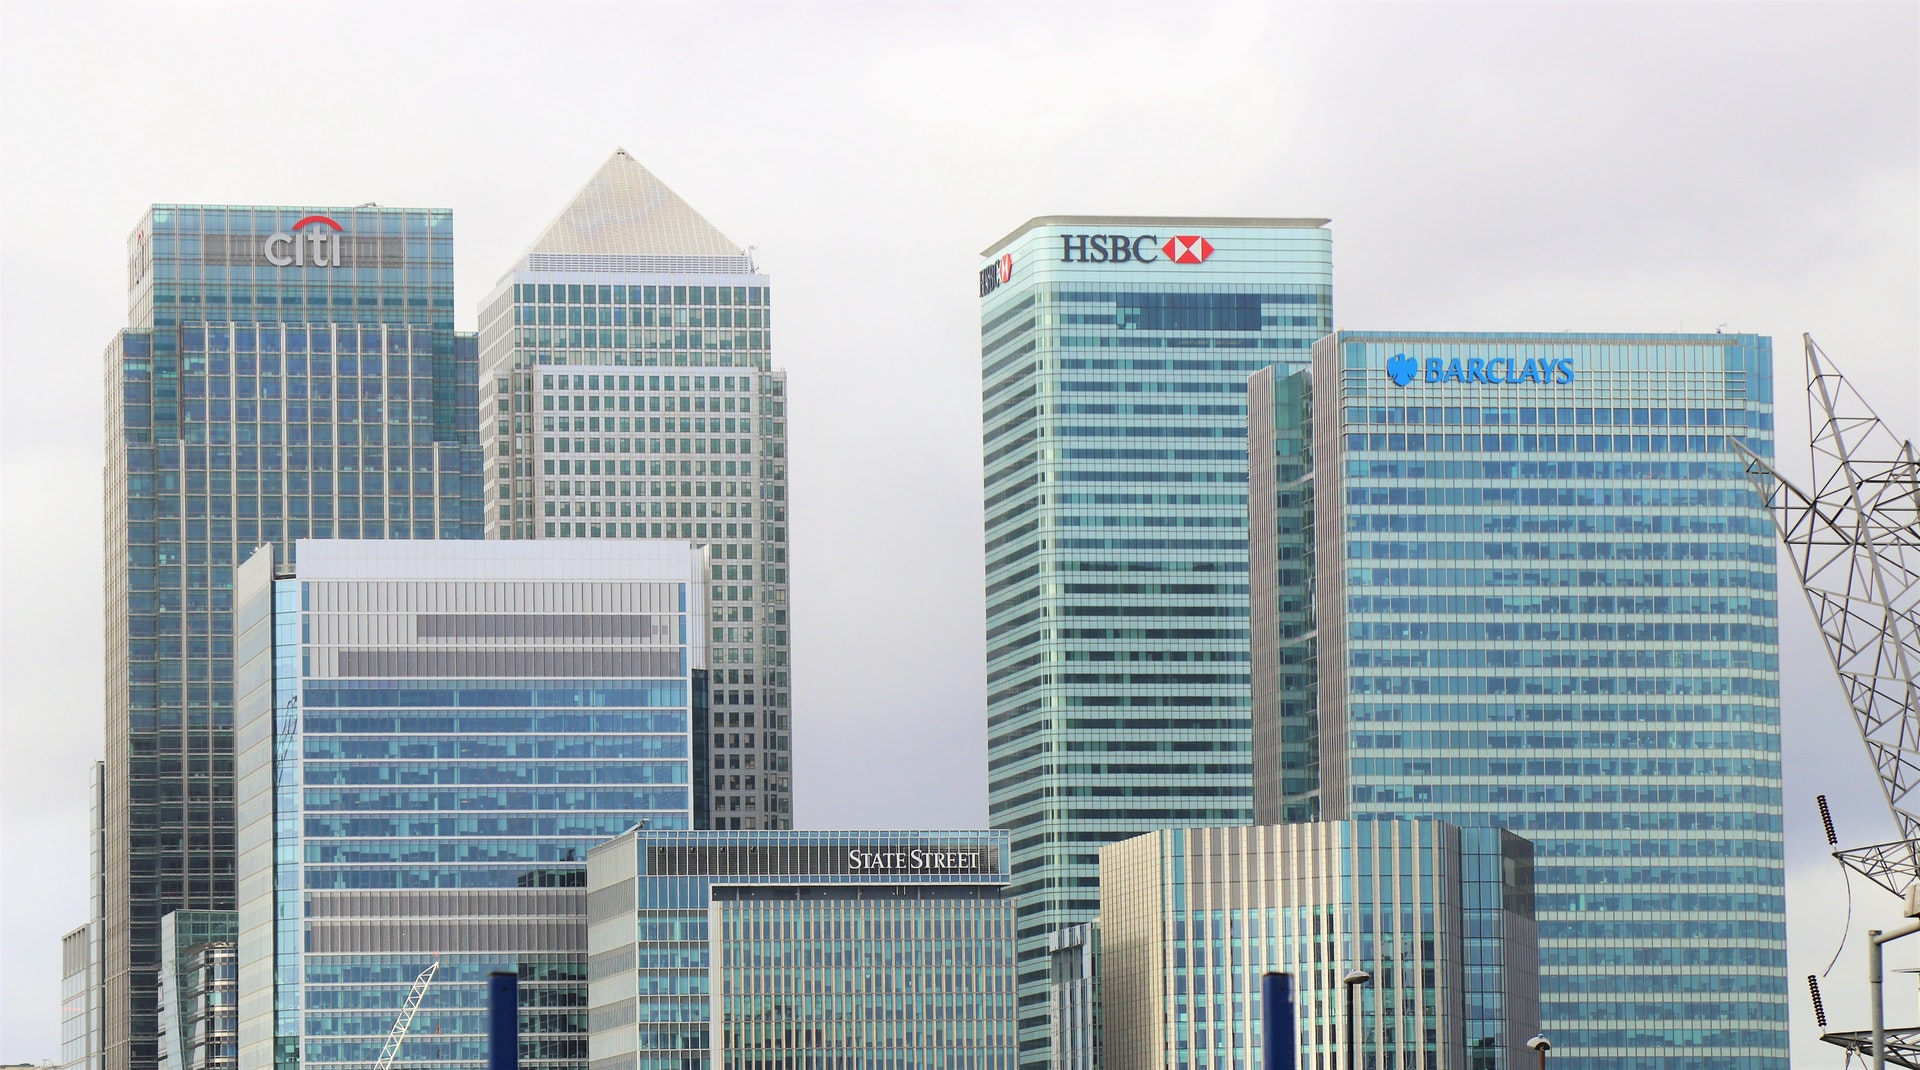 The Financial Services contractor market in the UK